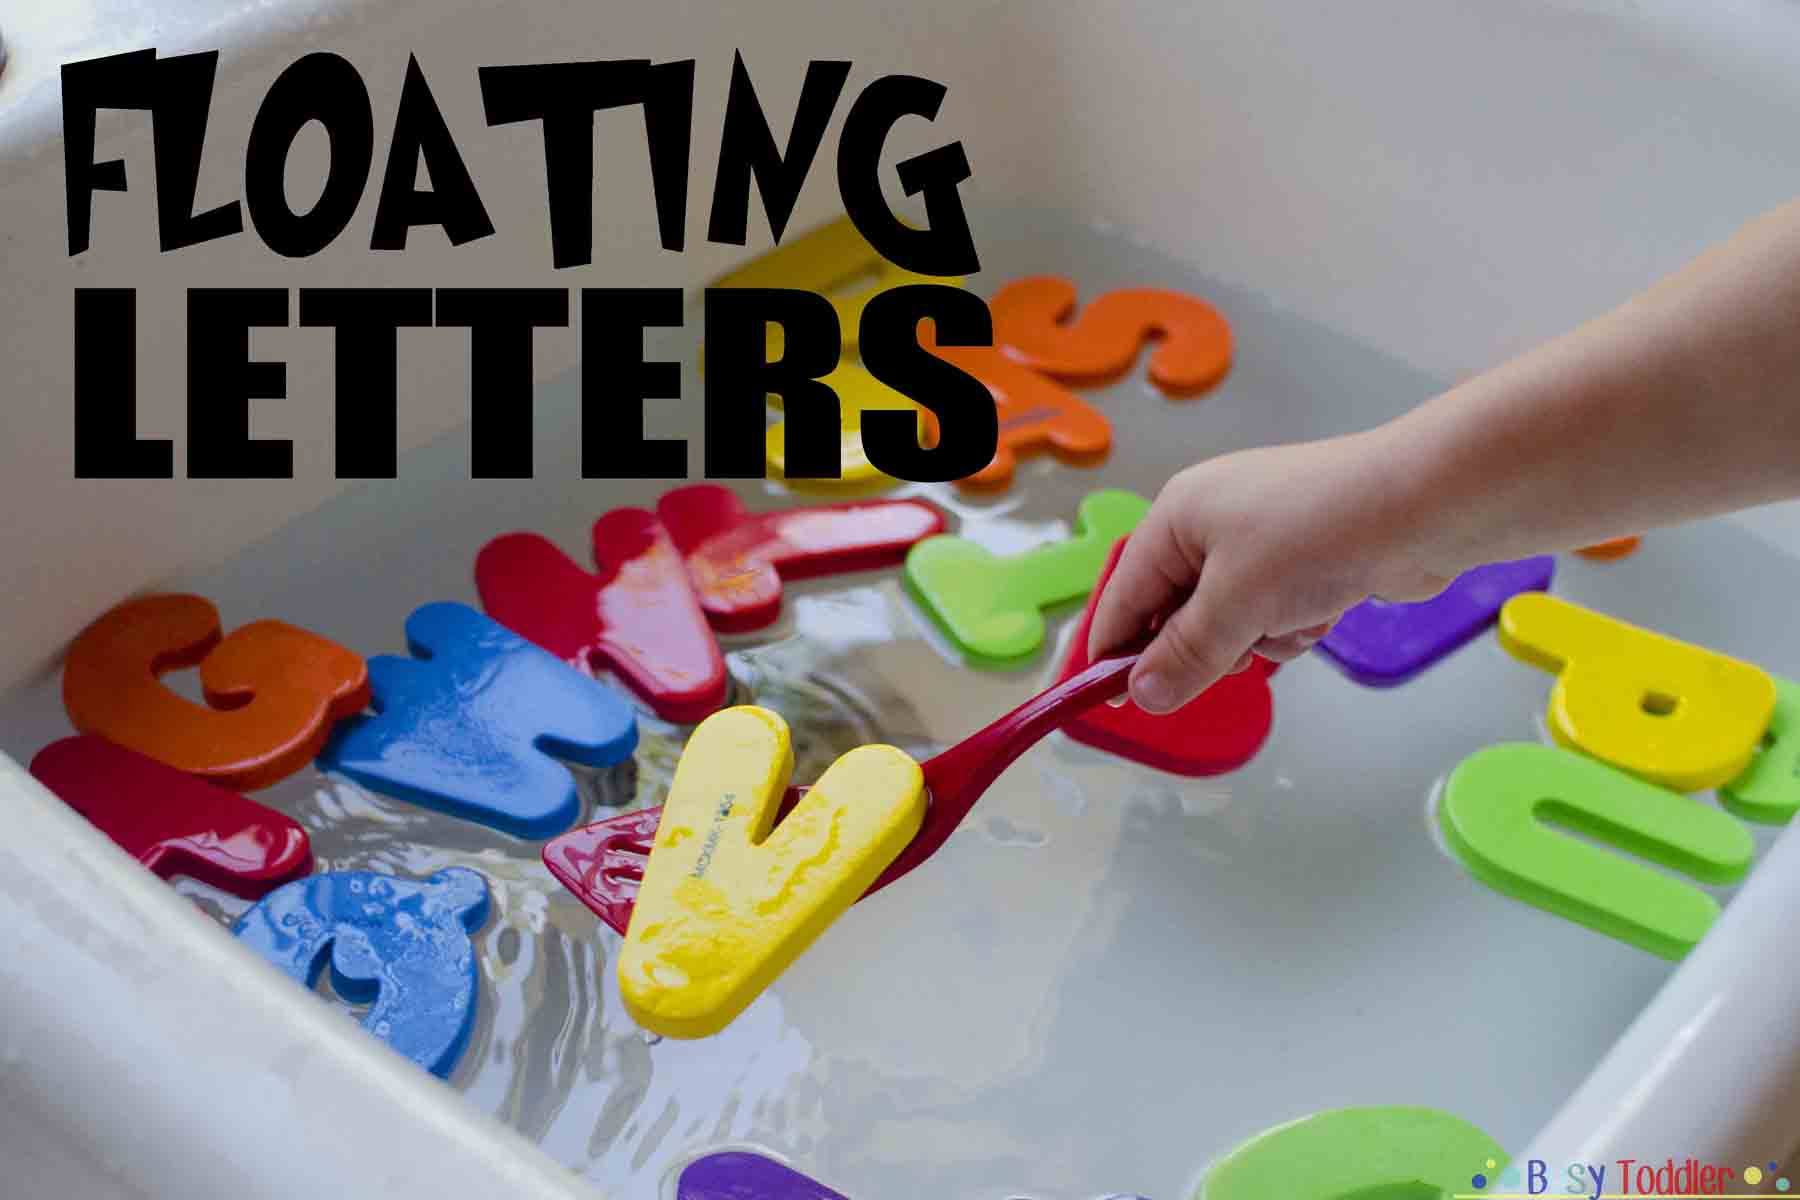 EASY TODDLER ACTIVITIES: 6 quick toddler activities so you can cook dinner in peace